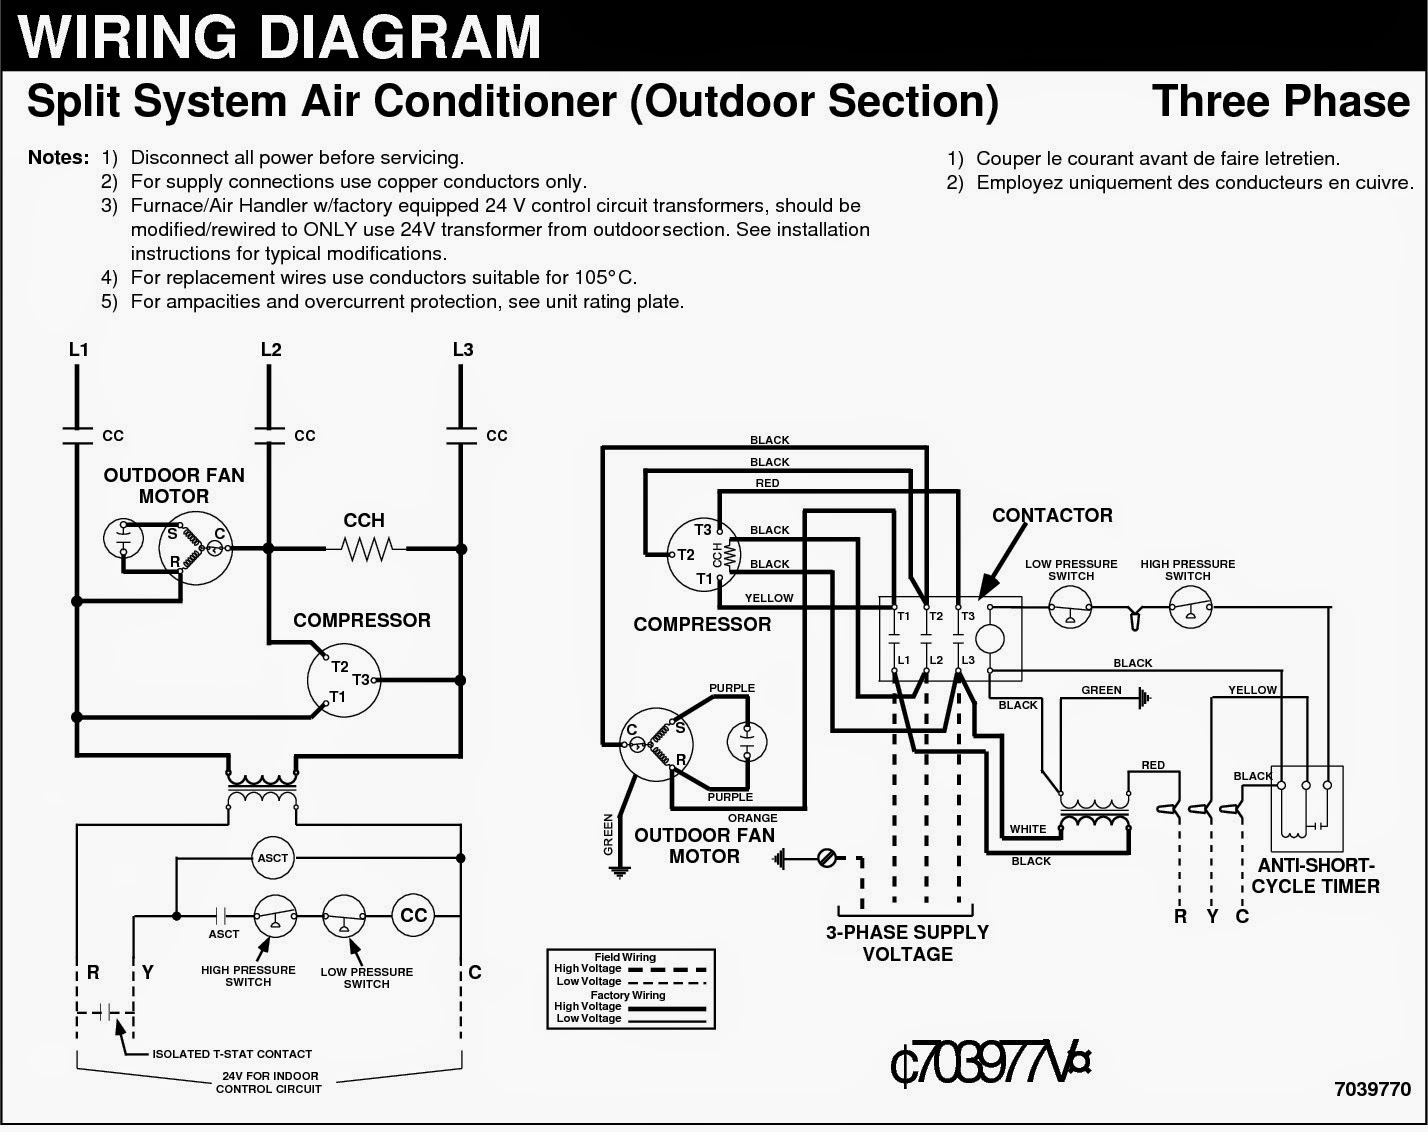 Ac unit wiring radio wiring diagram electrical wiring diagrams for air conditioning systems part two rh electrical knowhow com ac outdoor unit wiring diagram ac unit thermostat wiring diagram cheapraybanclubmaster Image collections